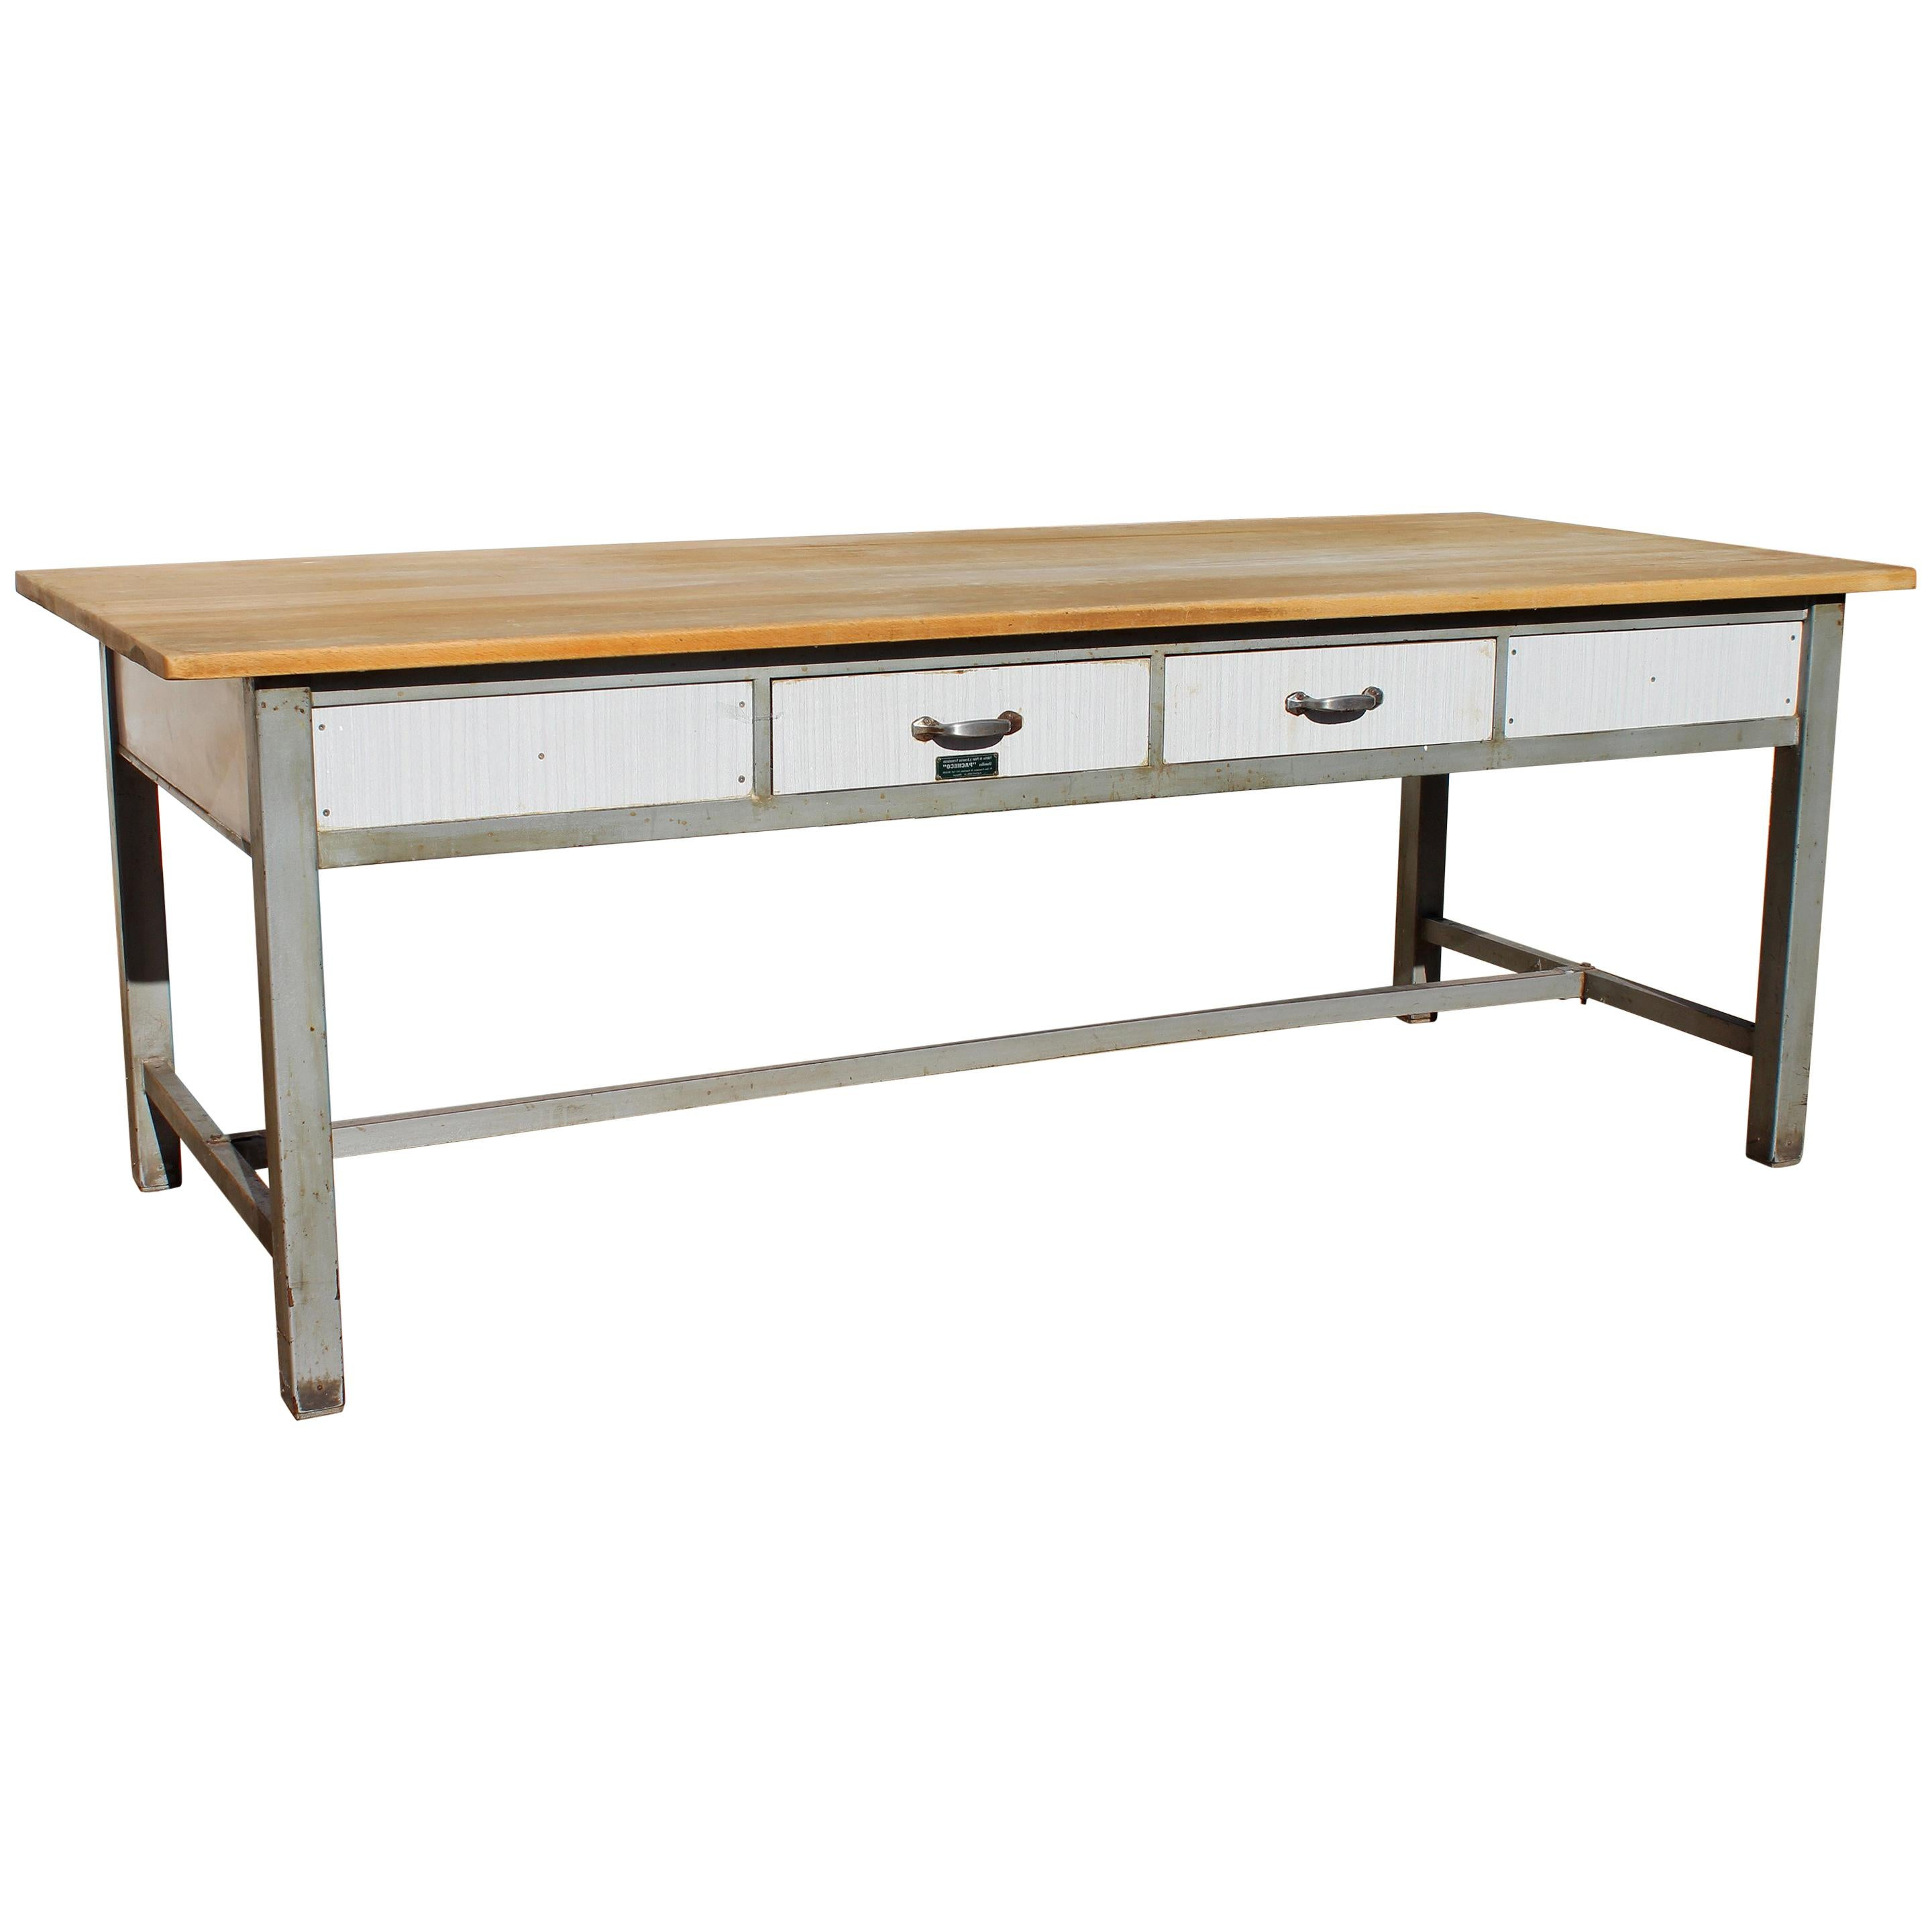 1980s Spanish Bakery Work Table with Steel Legs